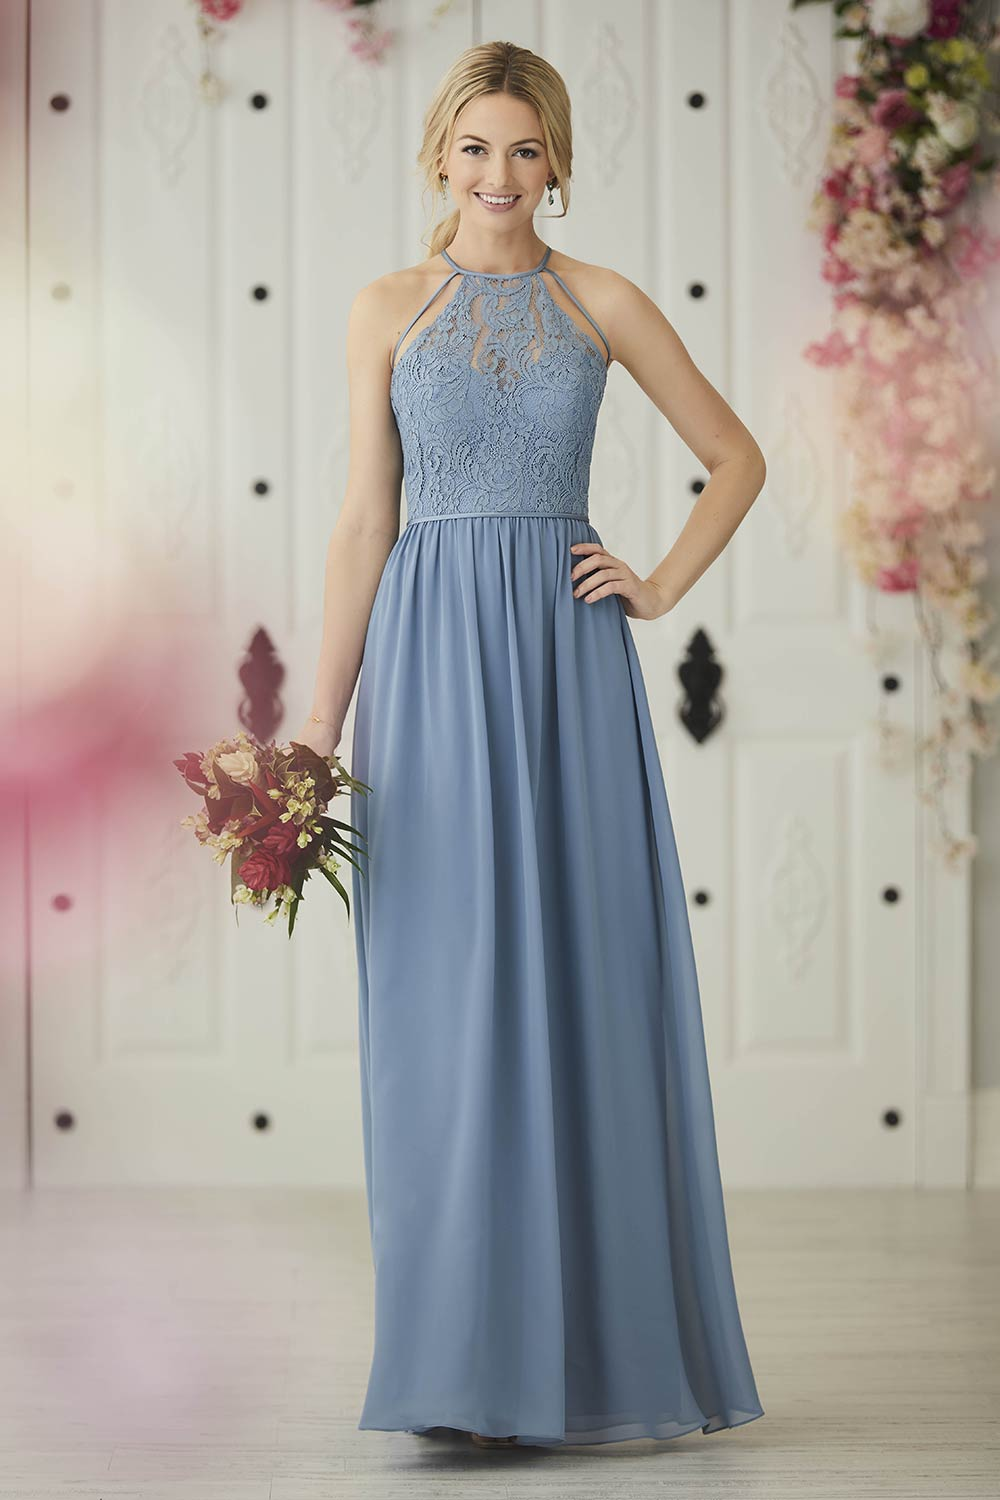 bridesmaid-dresses-jacquelin-bridals-canada-27299